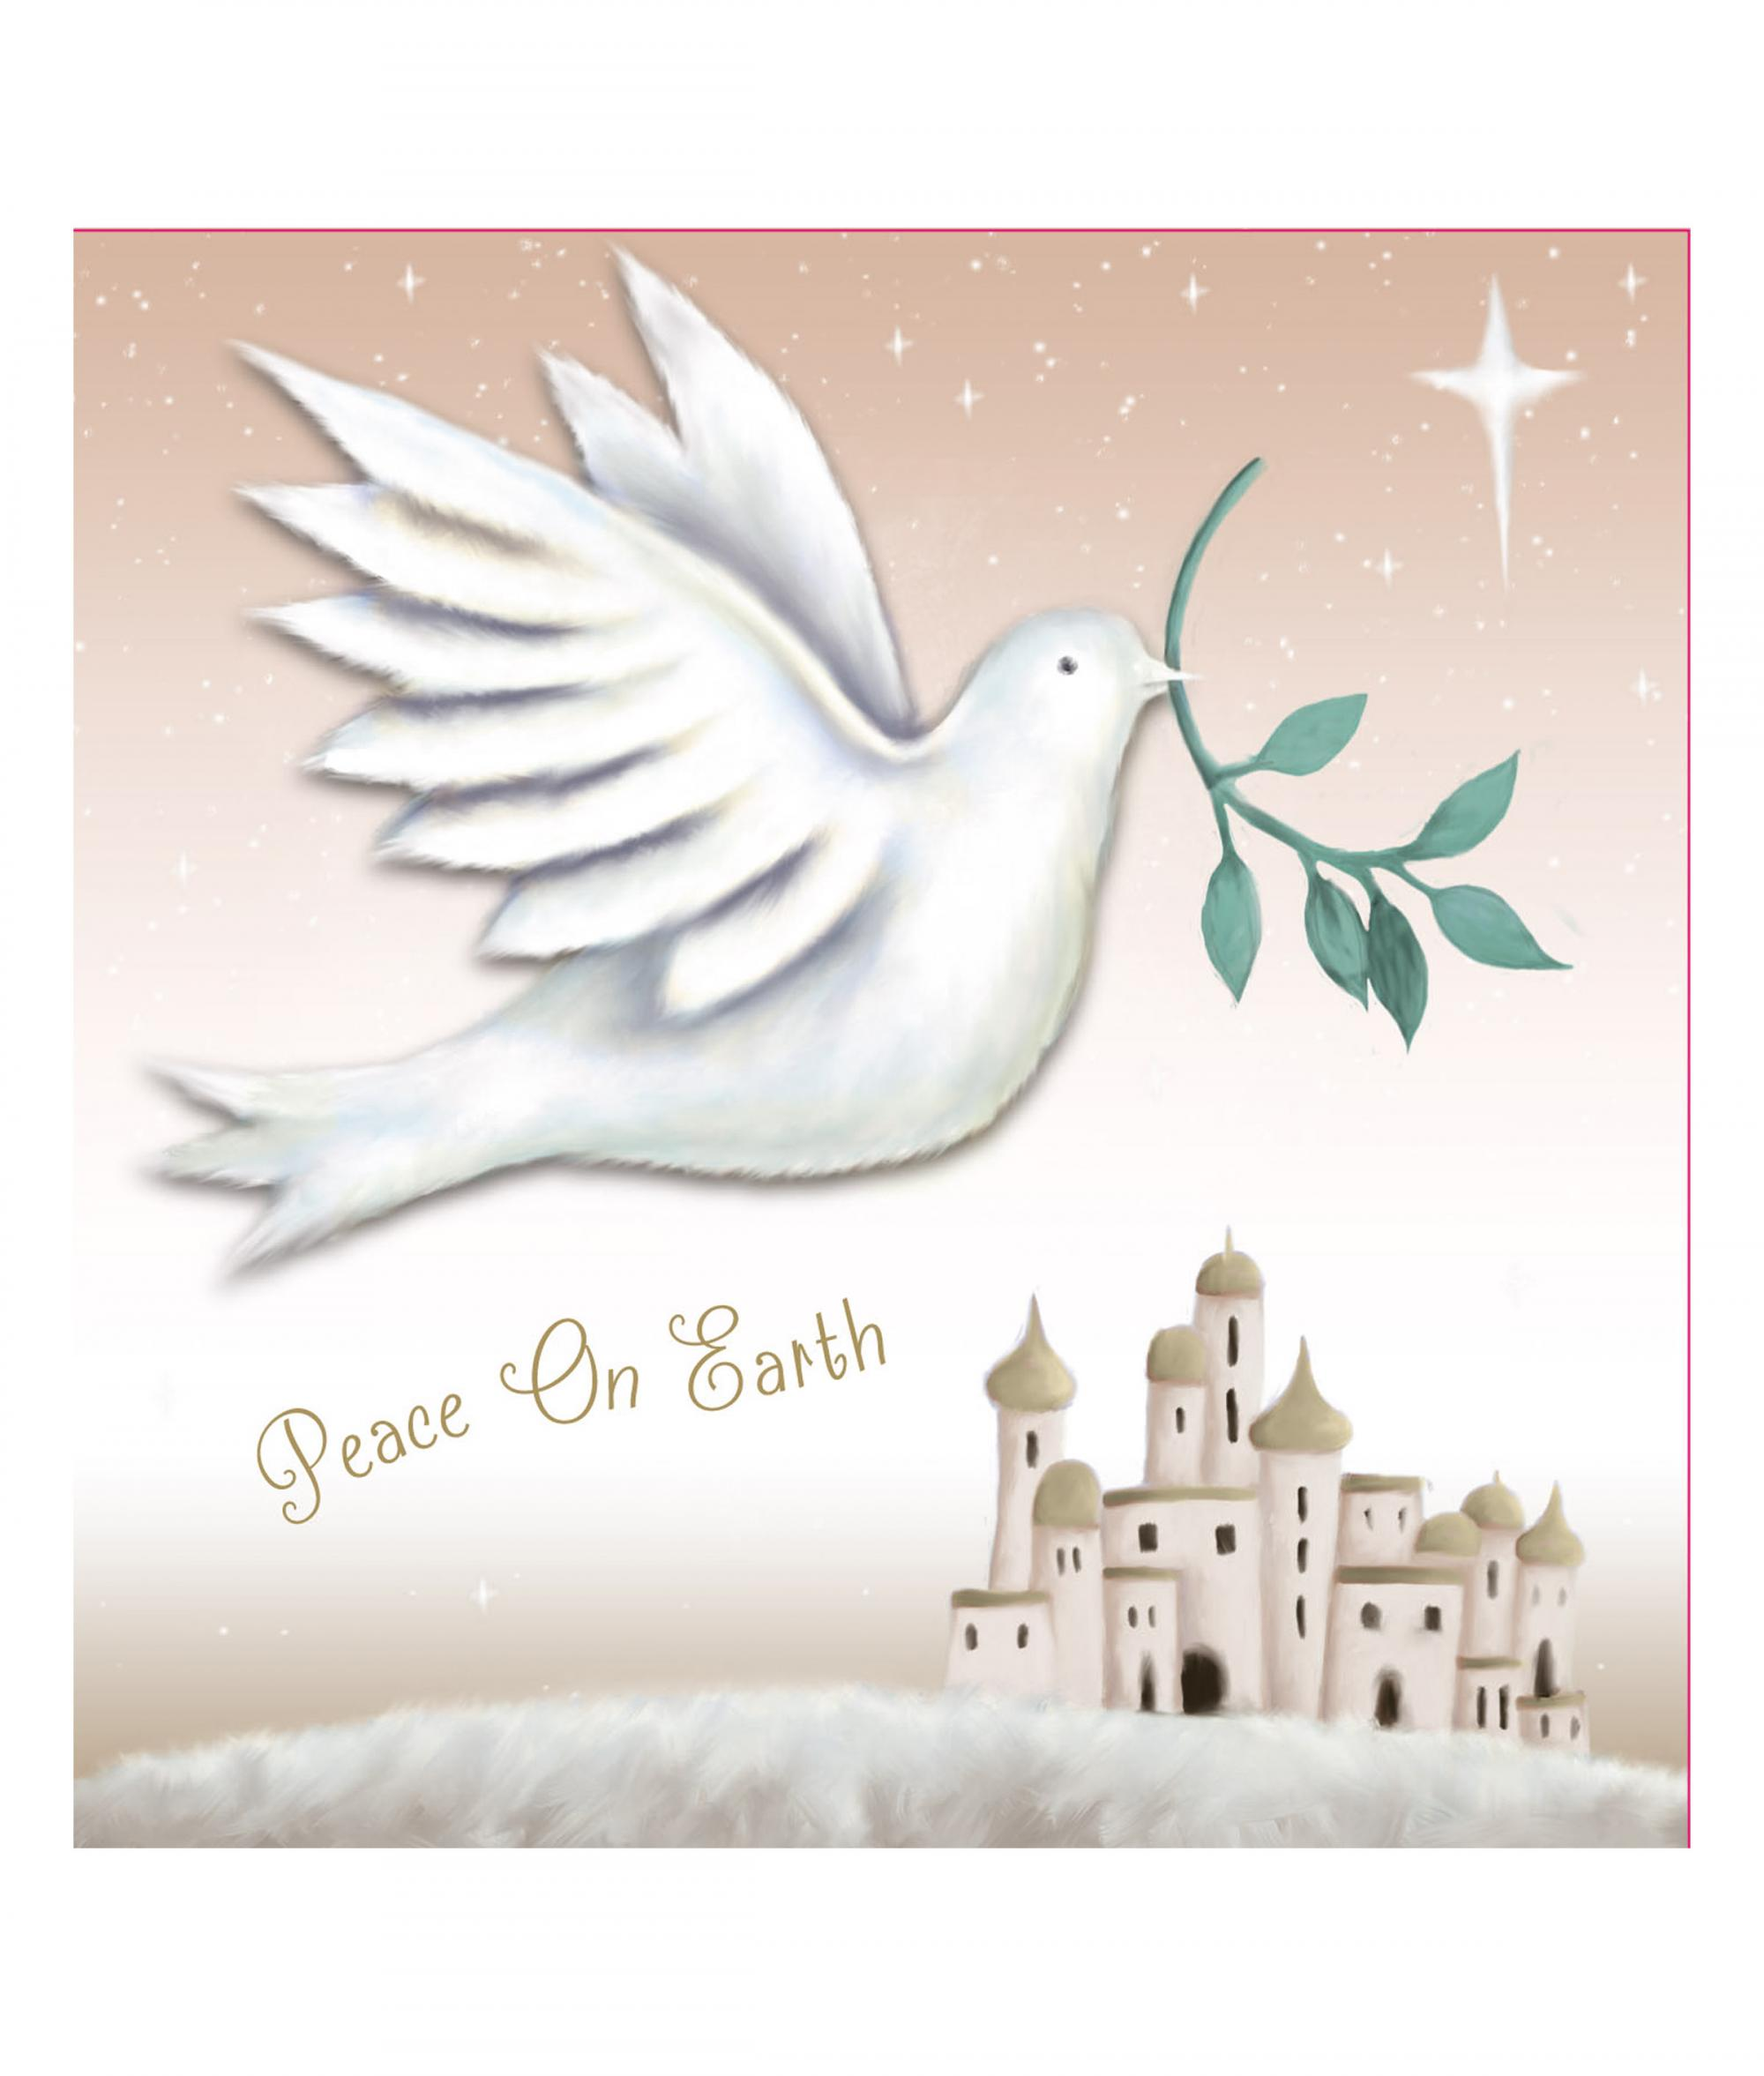 peace on earth cancer research uk christmas card - Peace On Earth Christmas Cards